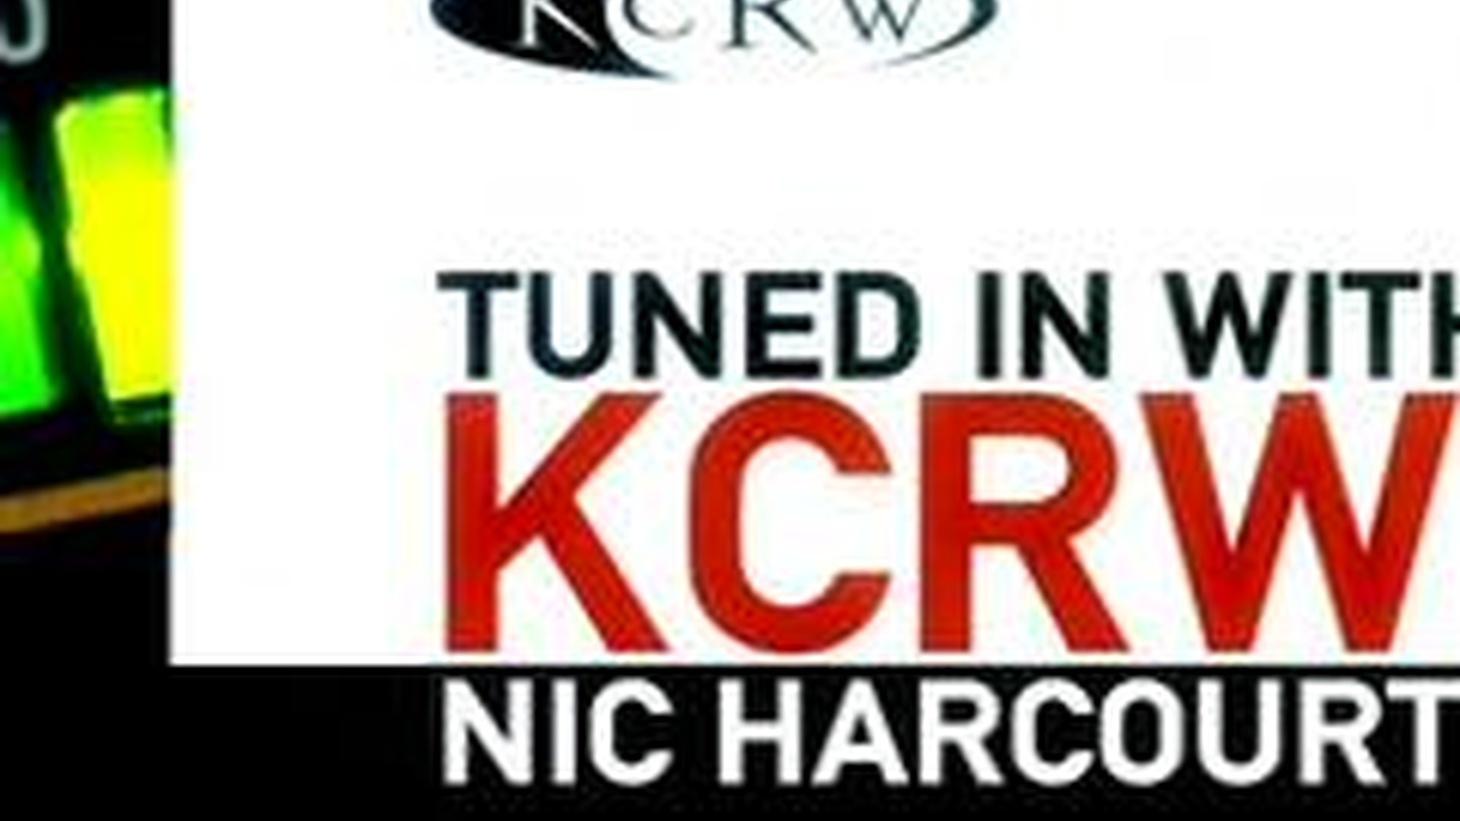 Tuned in with KCRW's Nic Harcourt features his top songs to listen for. This week, discover tracks from Takka Takka (MIGRATION), My Brightest Diamond (INSIDE A BOY),  Rachael Yamagata (ELEPHANTS), and The Boat People (CHANDELIERS).